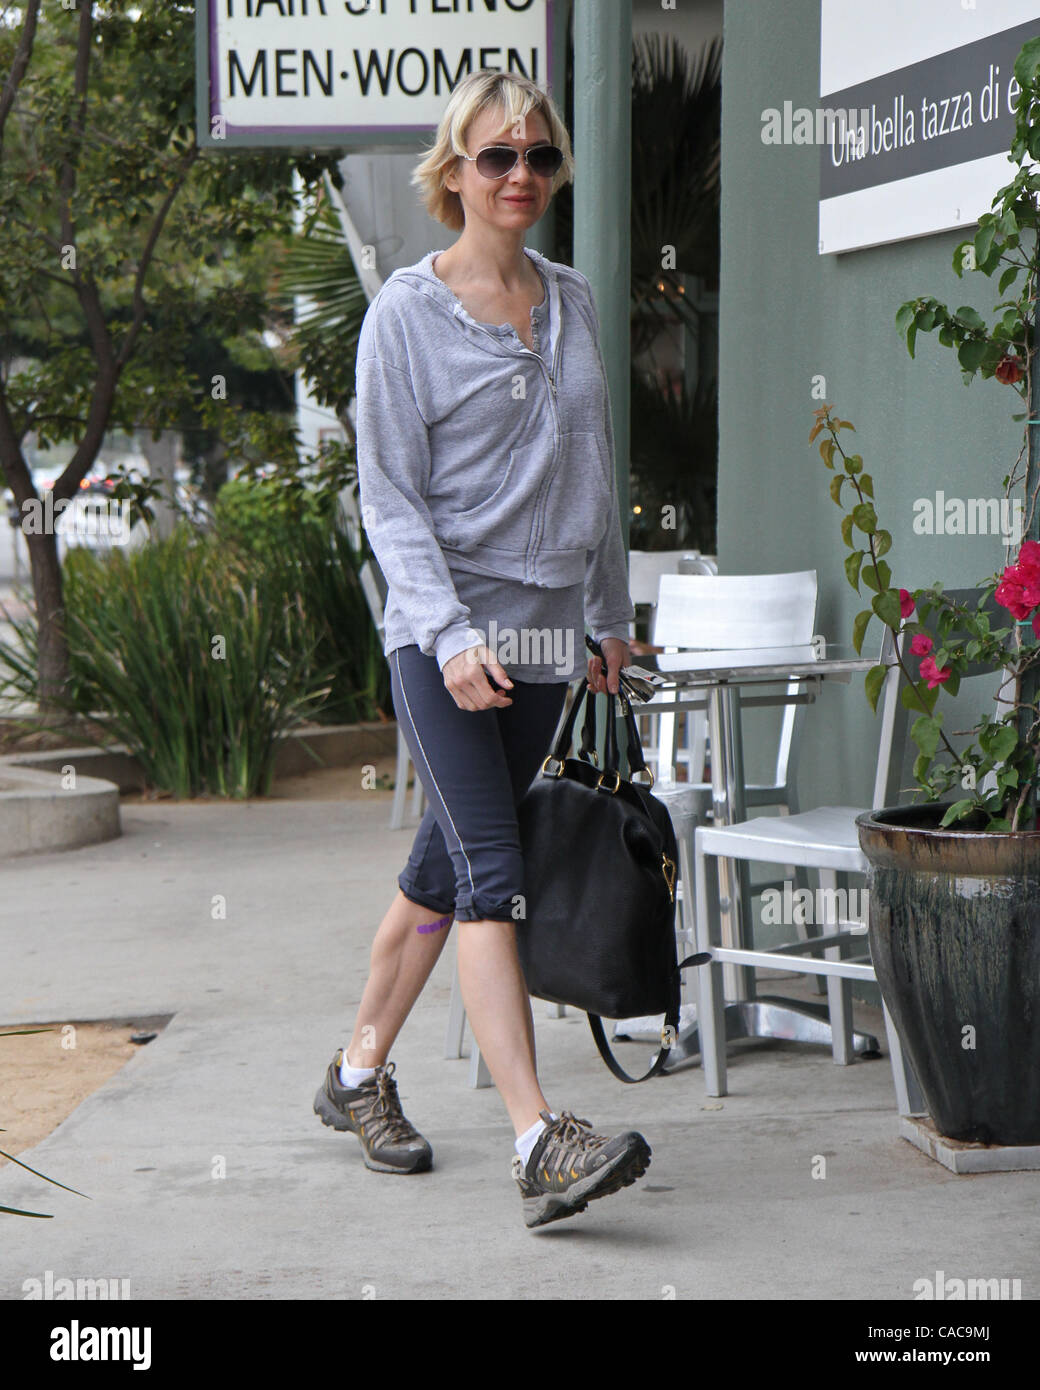 0a70a869bd4c Aug 07, 2010 - Los Angeles, California, U.S. - Actress RENEE ZELLWEGER  leaving